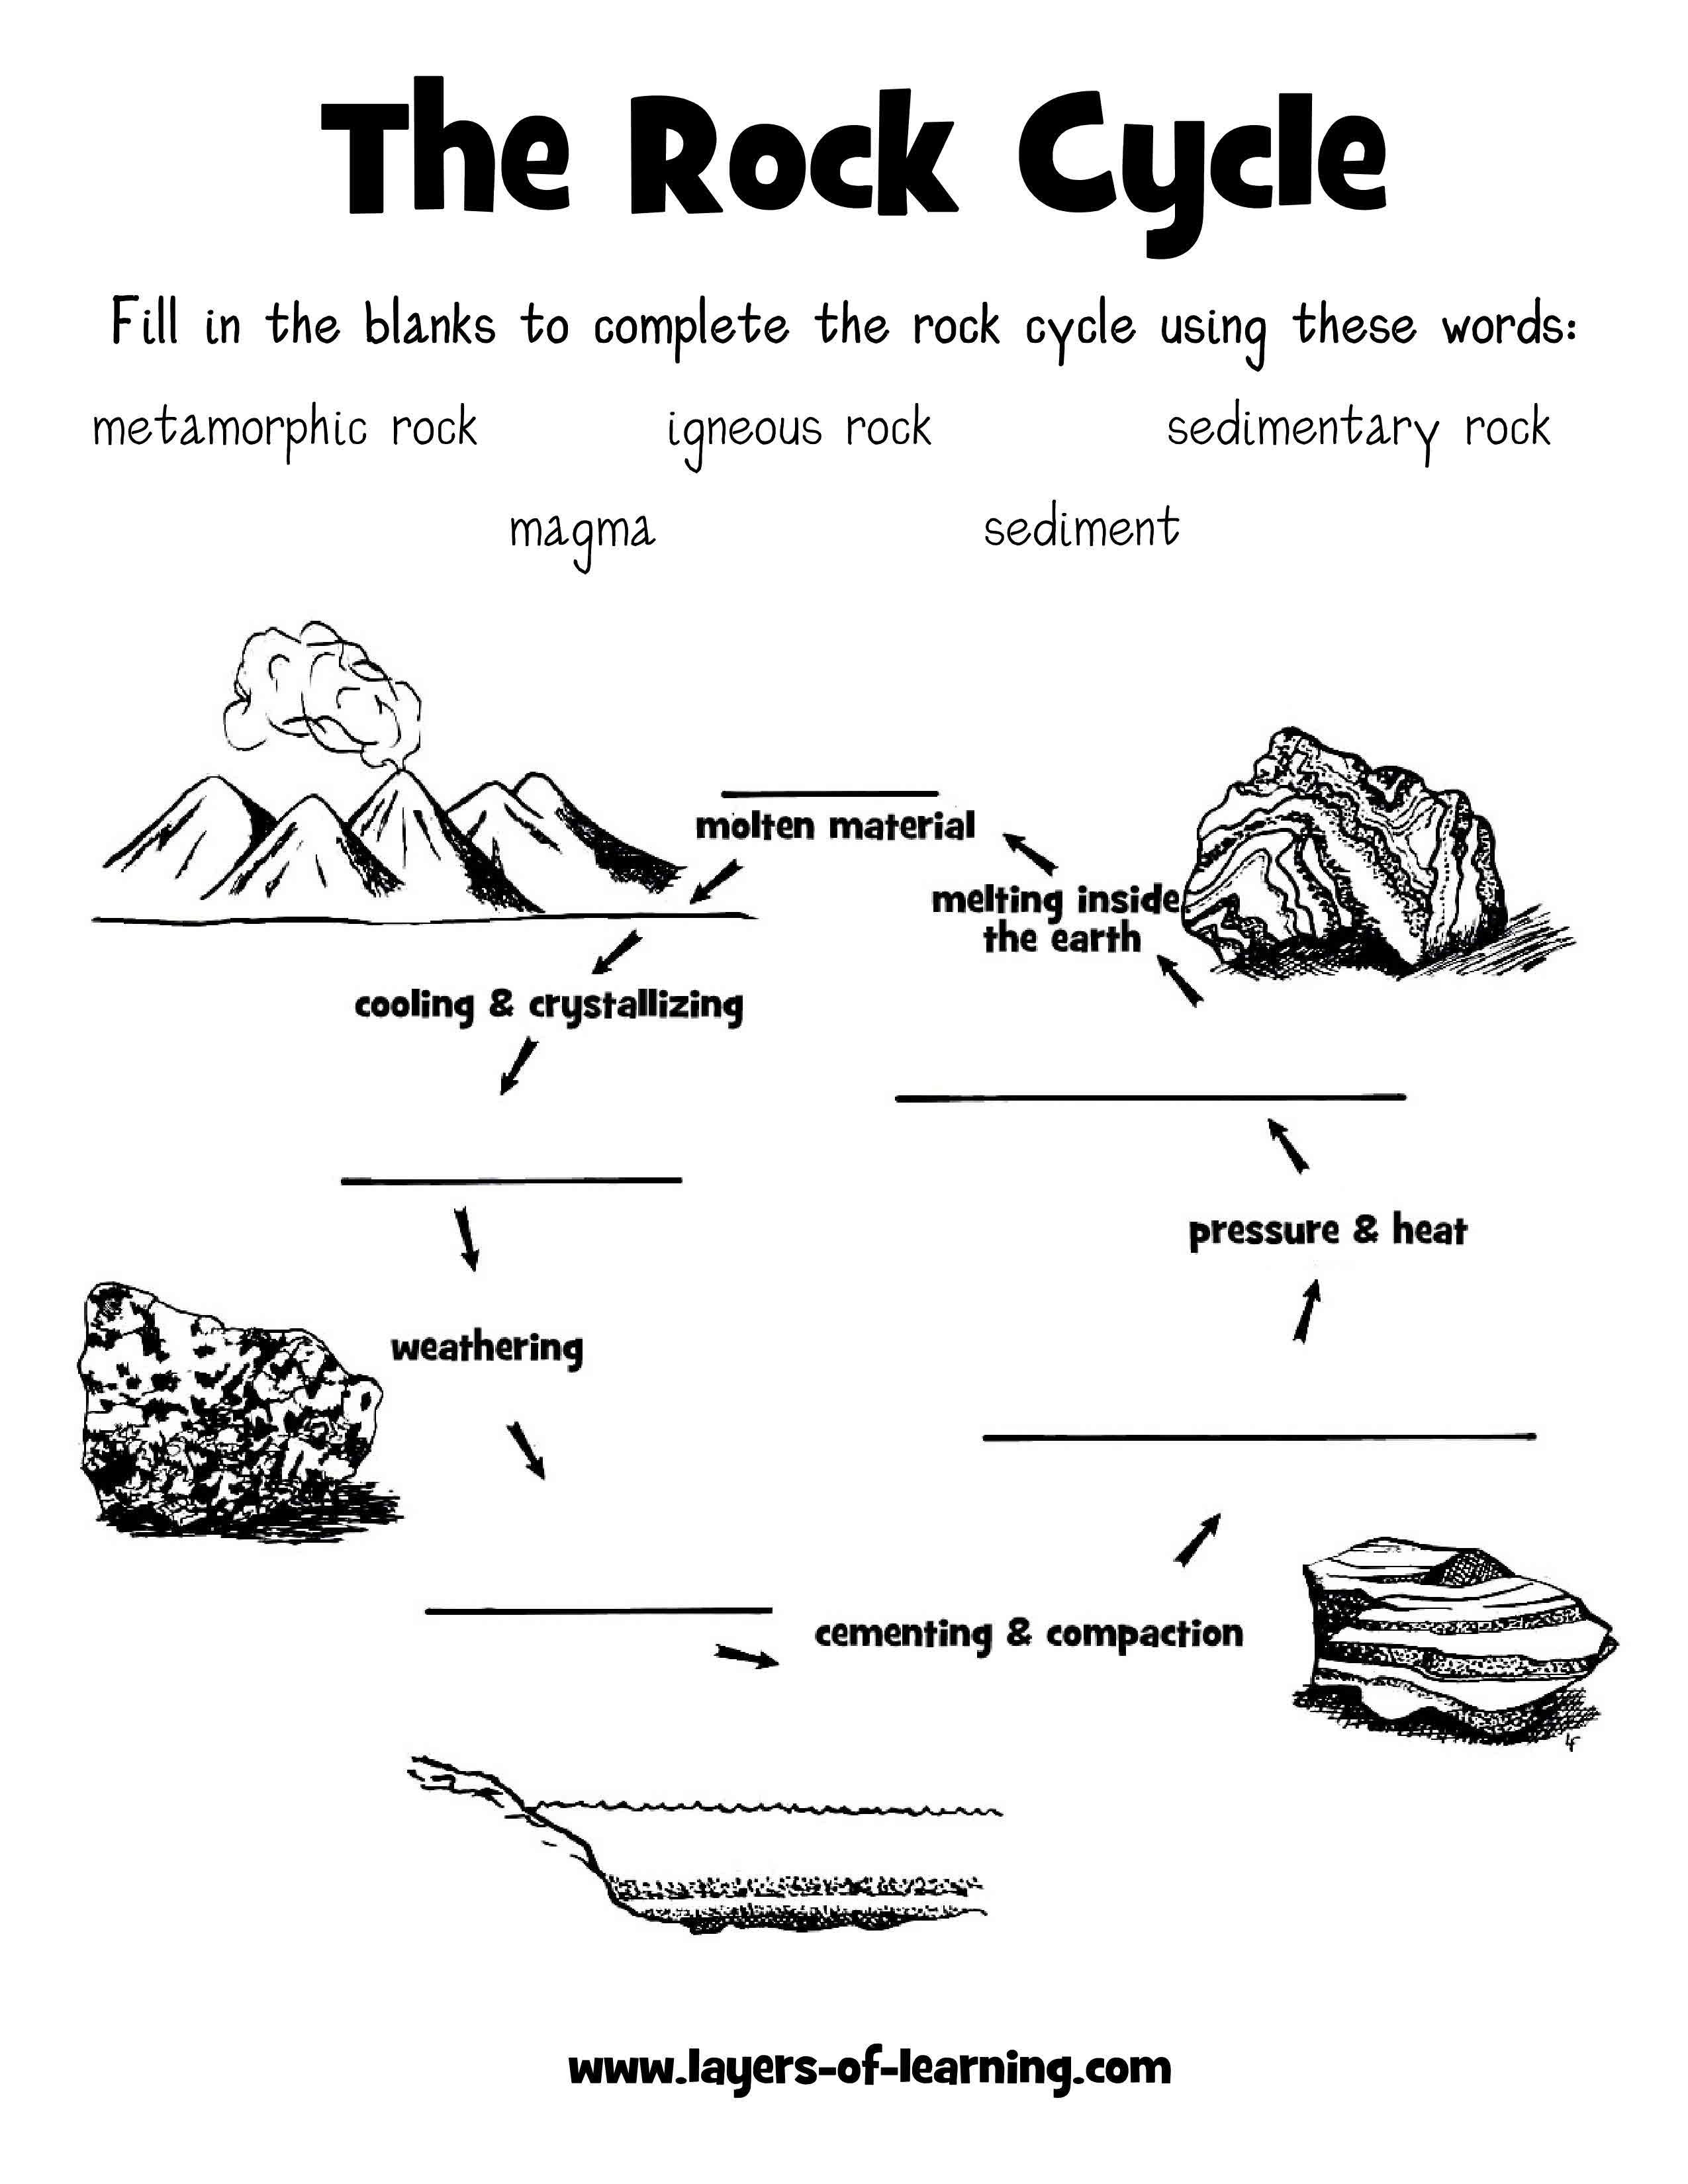 Worksheets Sedimentary Rocks Worksheet rock cycle worksheet layers of learning science pinterest learning